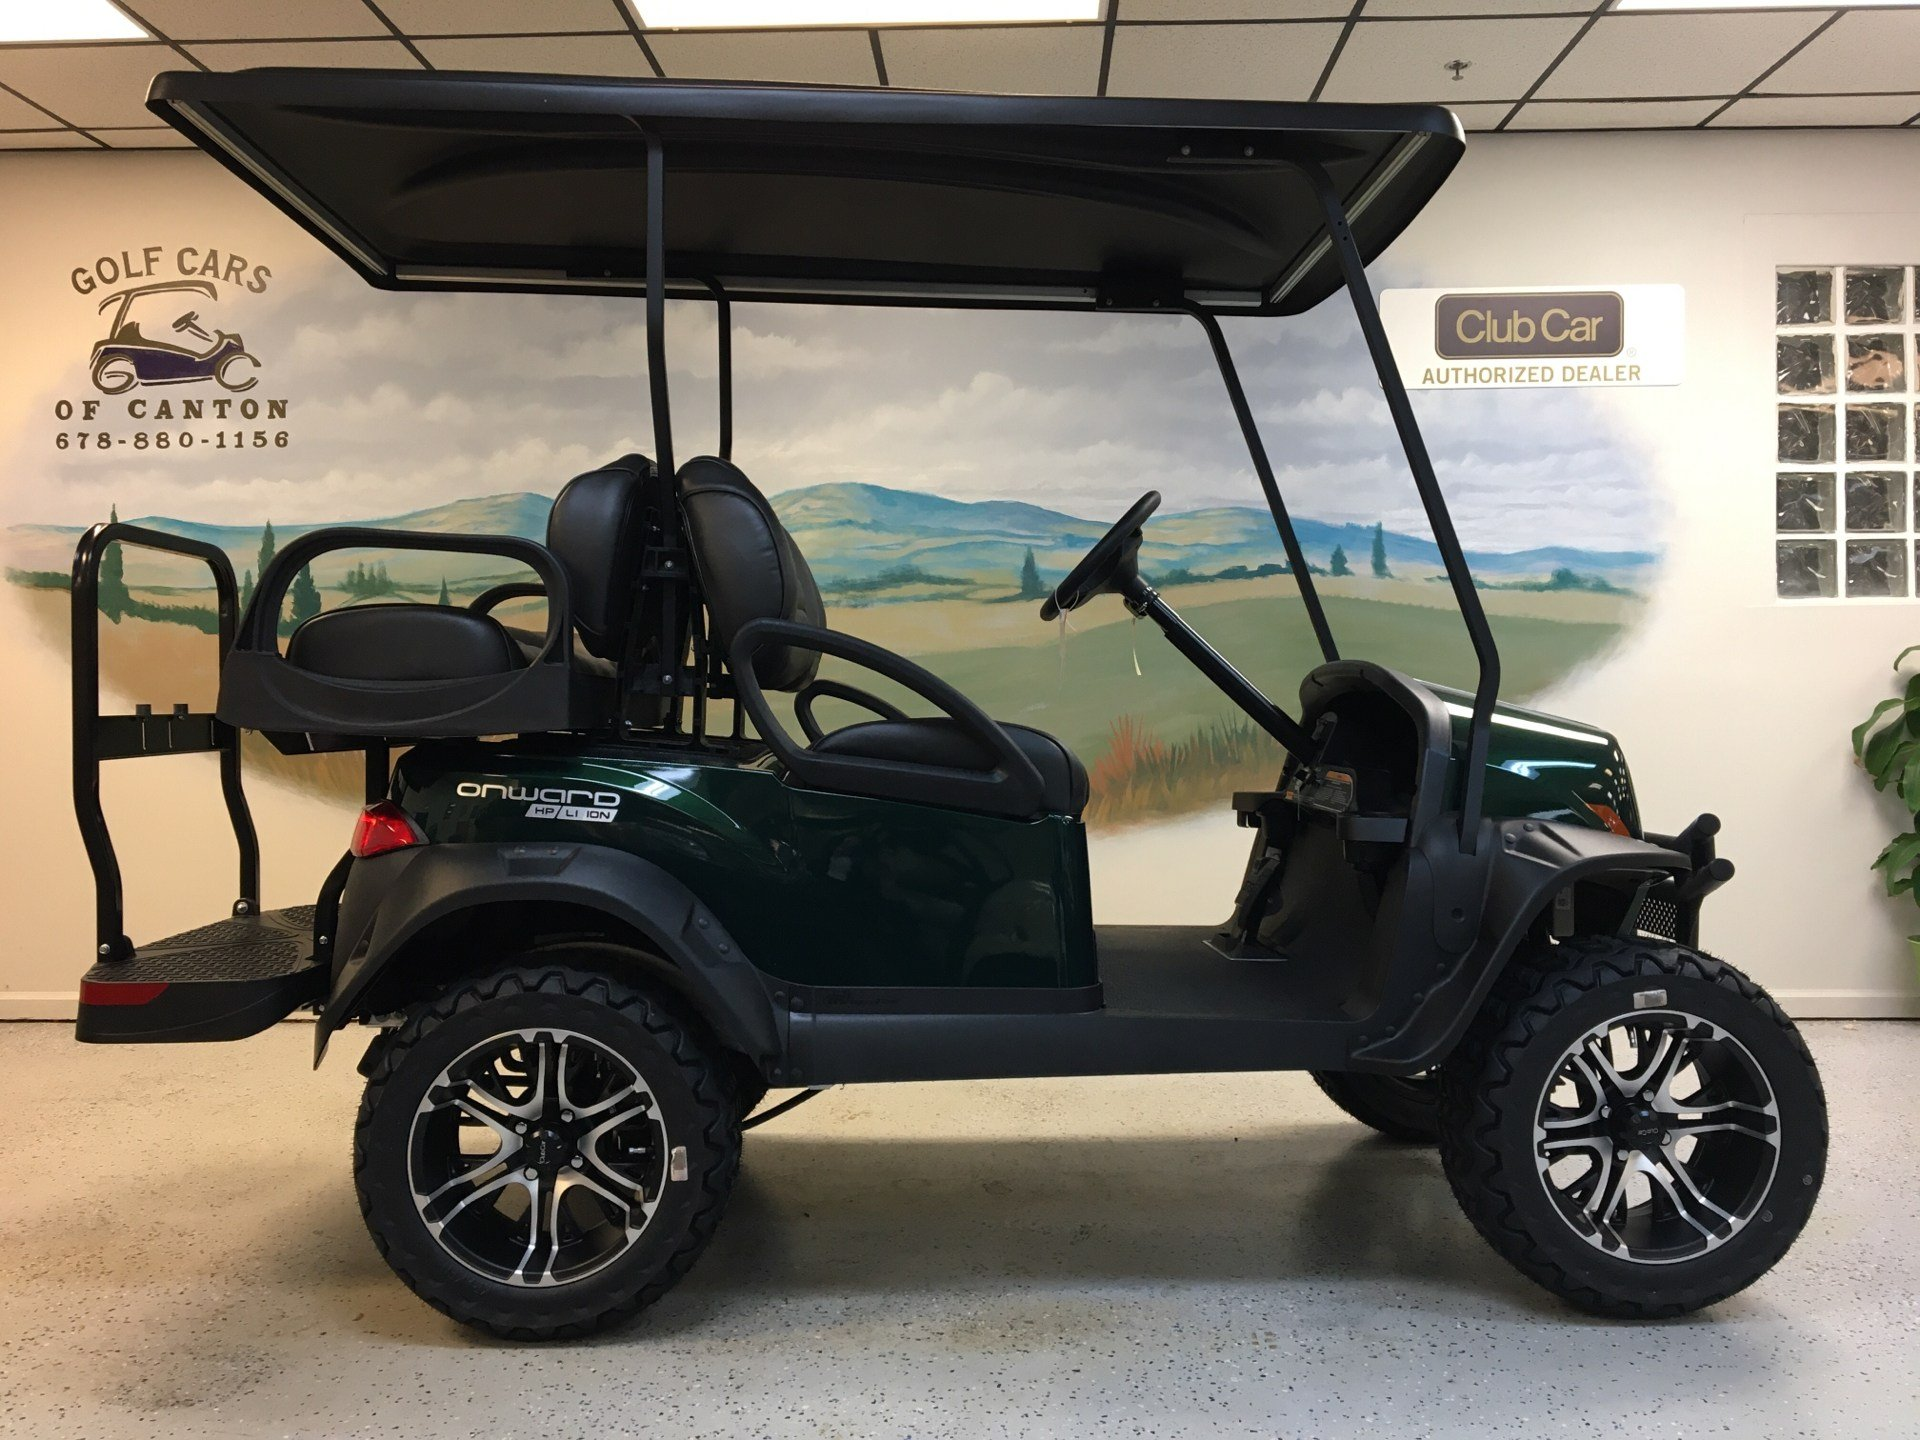 2020 Club Car Onward 4-Passenger Lifted Lithium Ion HP in Canton, Georgia - Photo 2